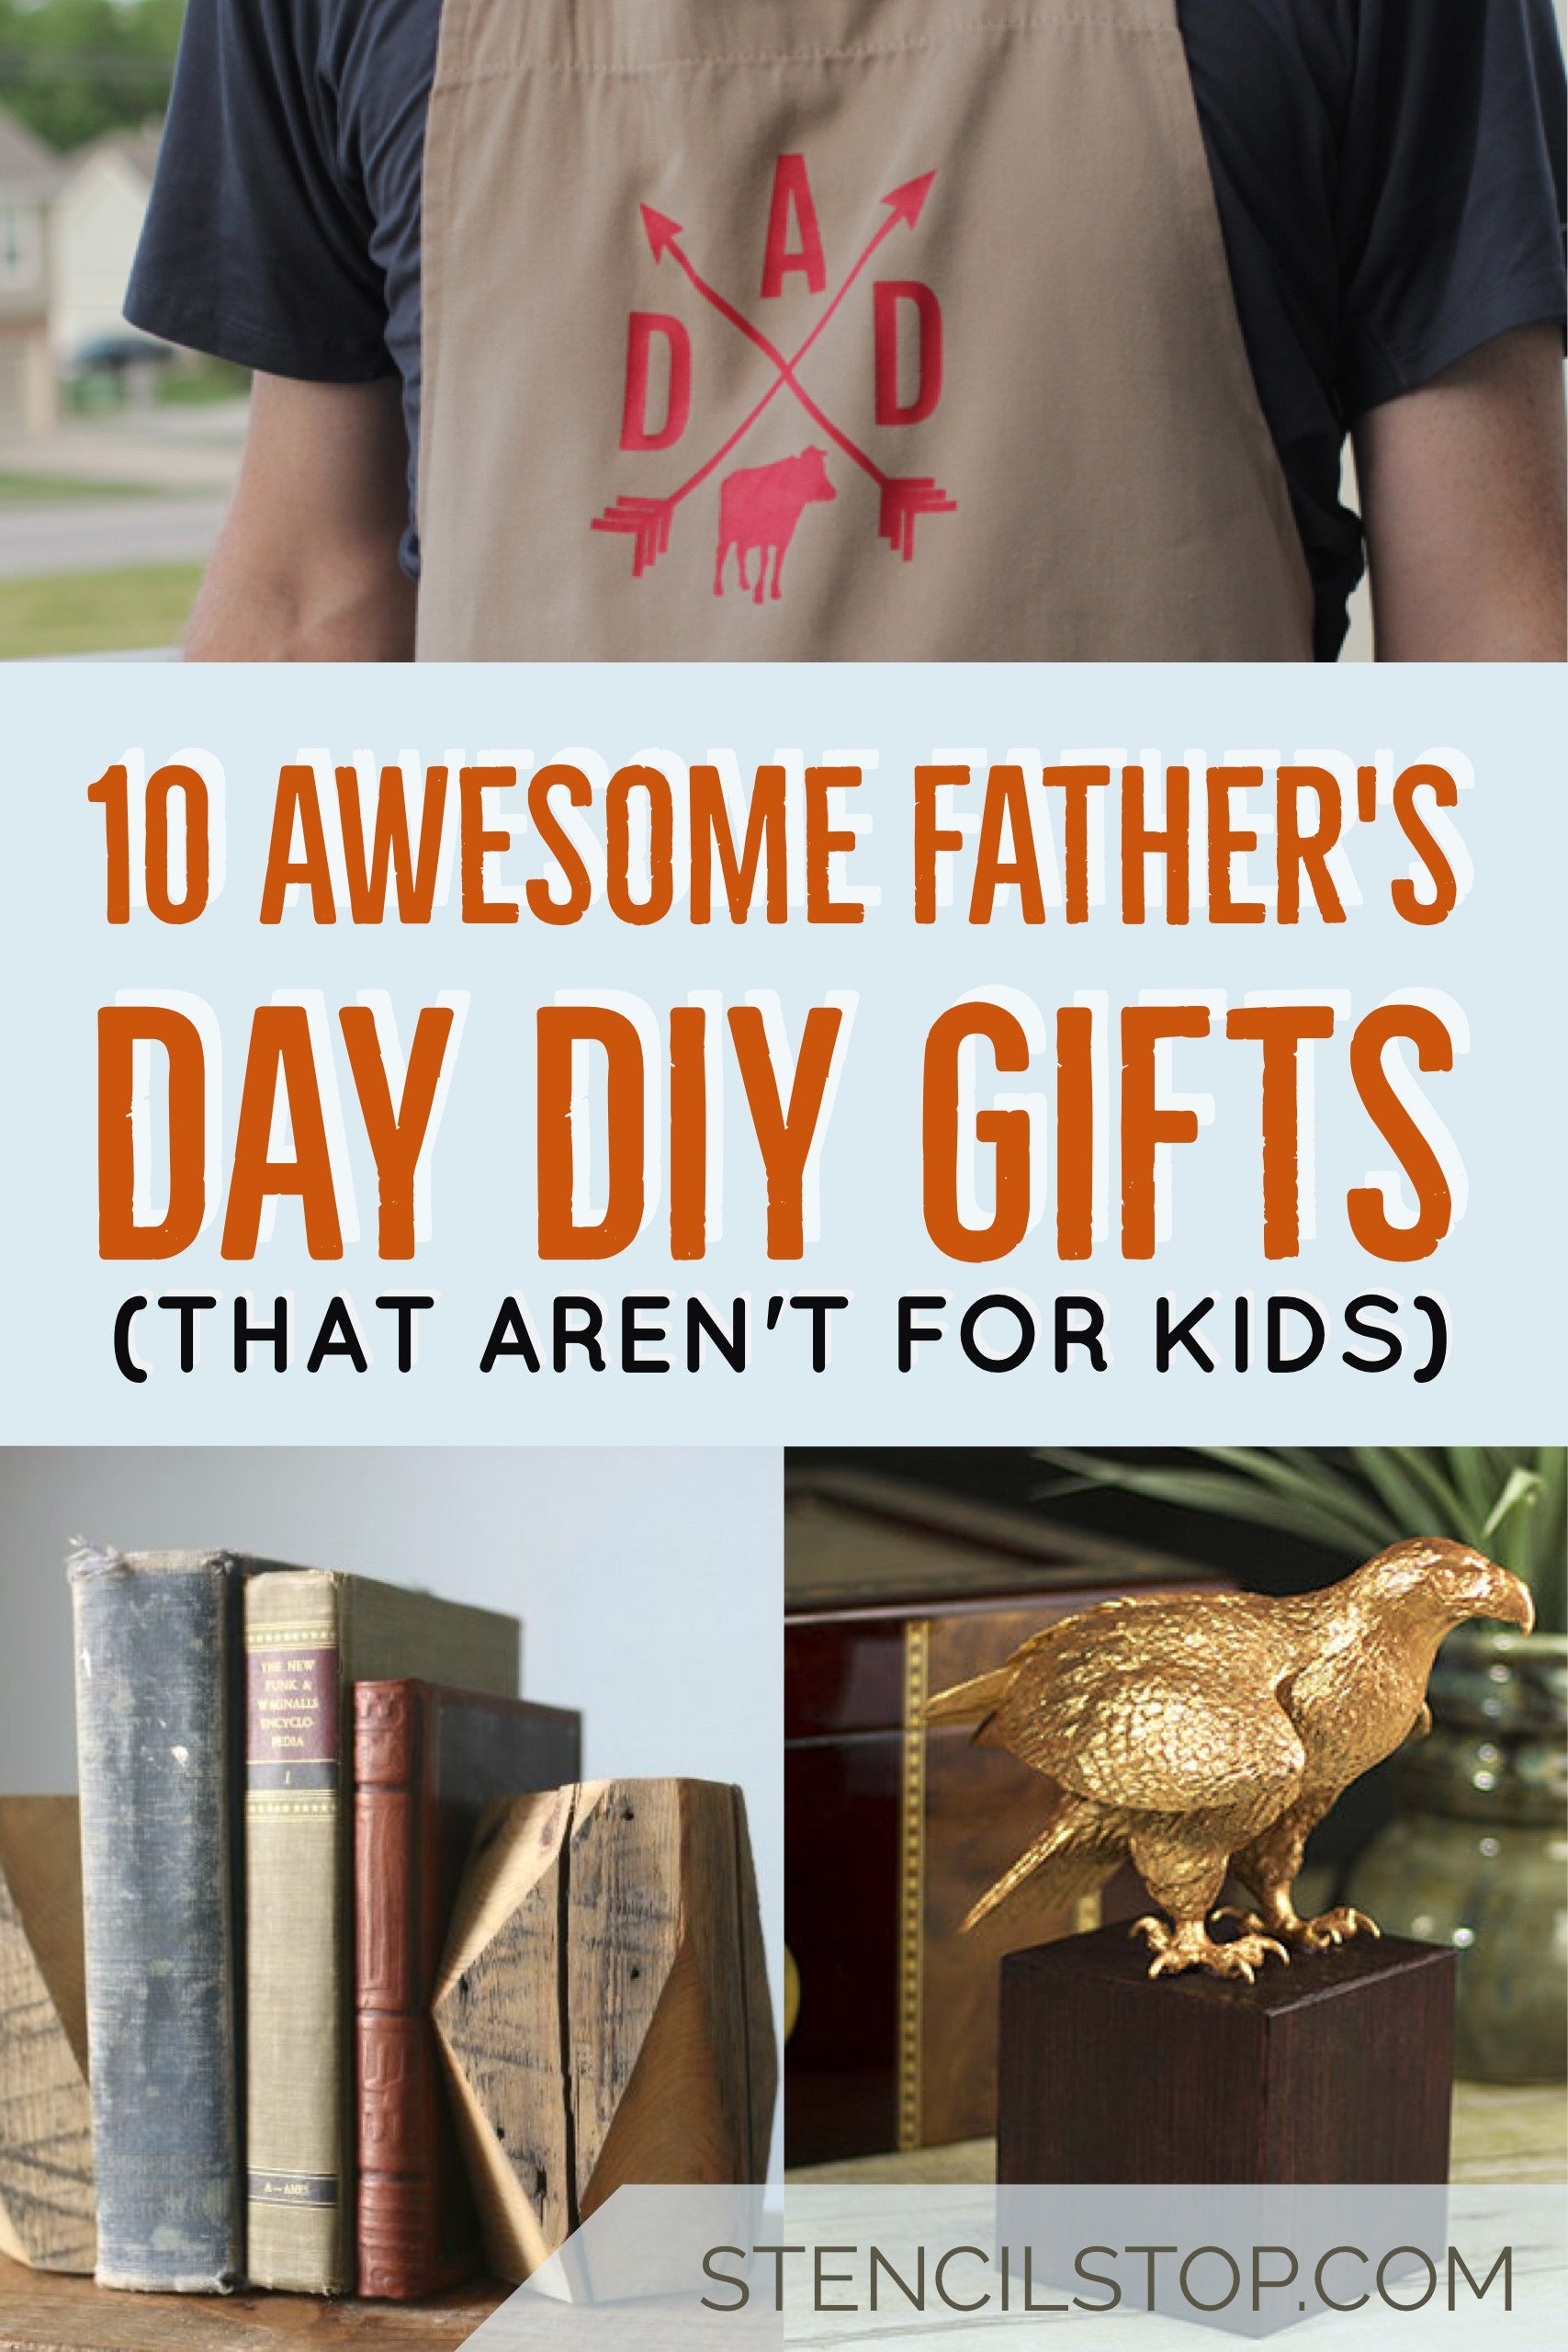 Stencil Stop - 10 Awesome Father's Day DIY Gifts (That Aren't for Kids)